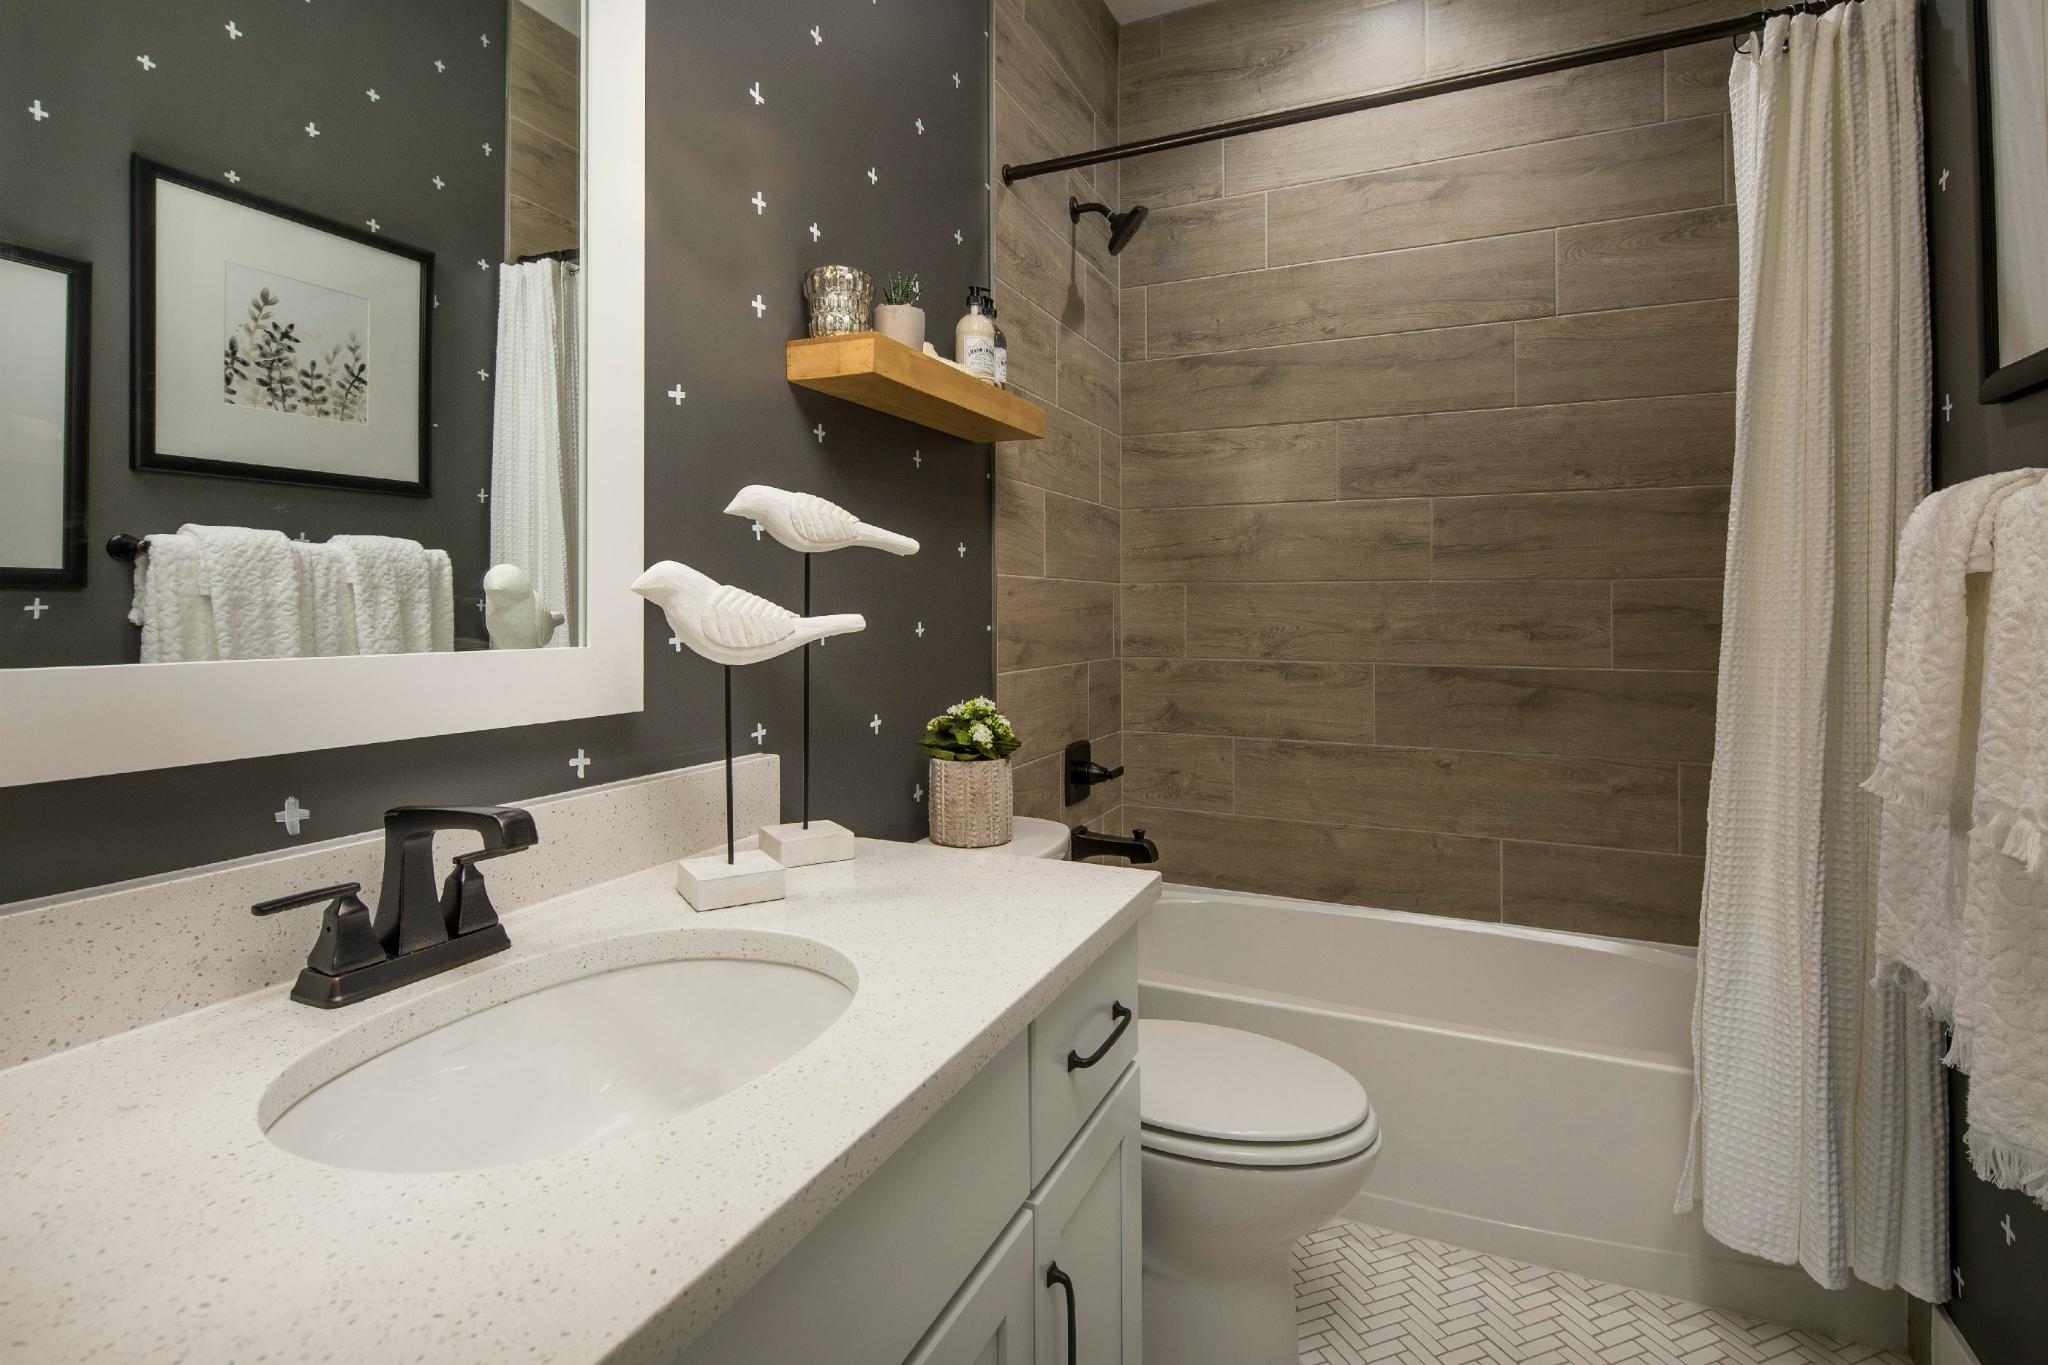 Bathroom featured in the Plan C408 By American Legend Homes in Fort Collins-Loveland, CO